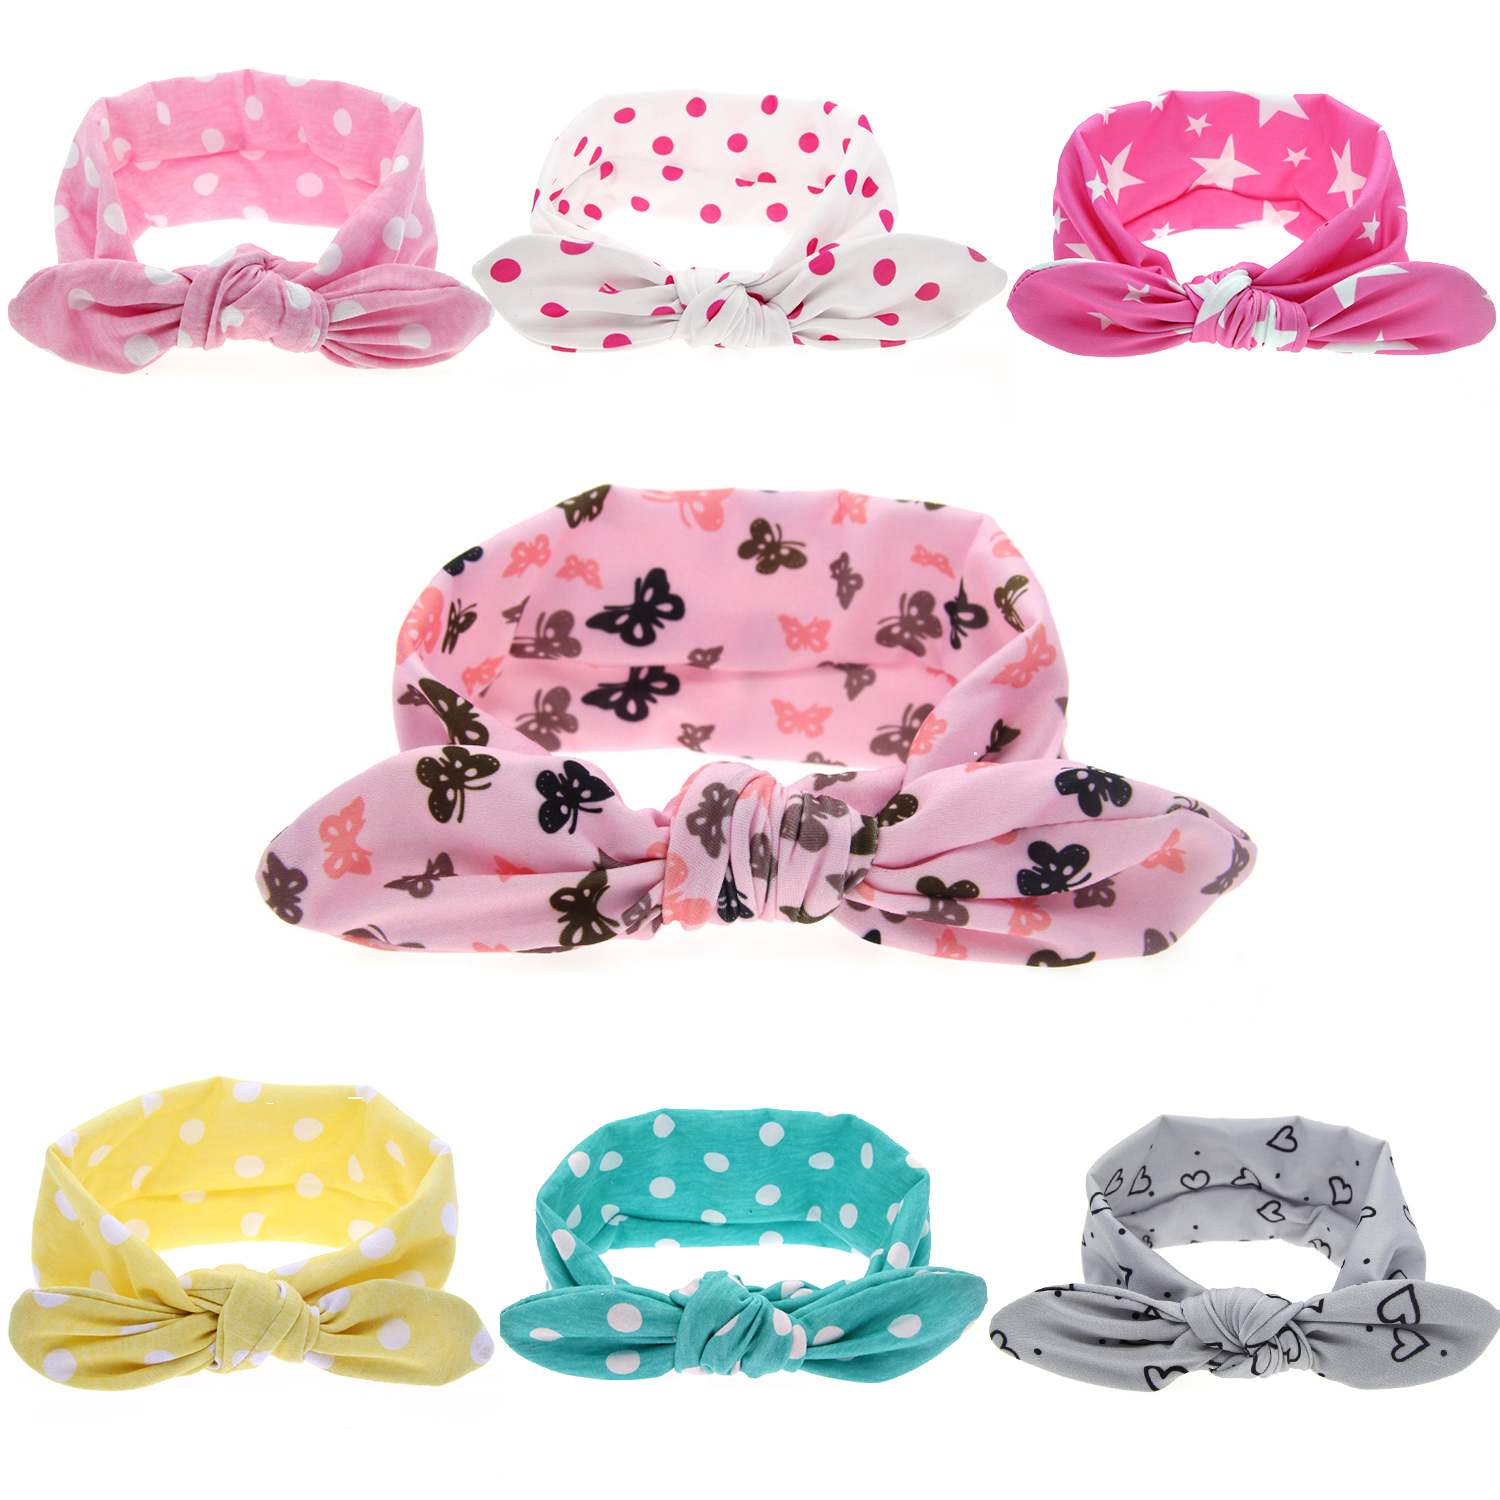 7 Pcs Baby Girls Toddler Infant Newborn Rabbit Ear Headband Hair bands Bunny Ear Turban